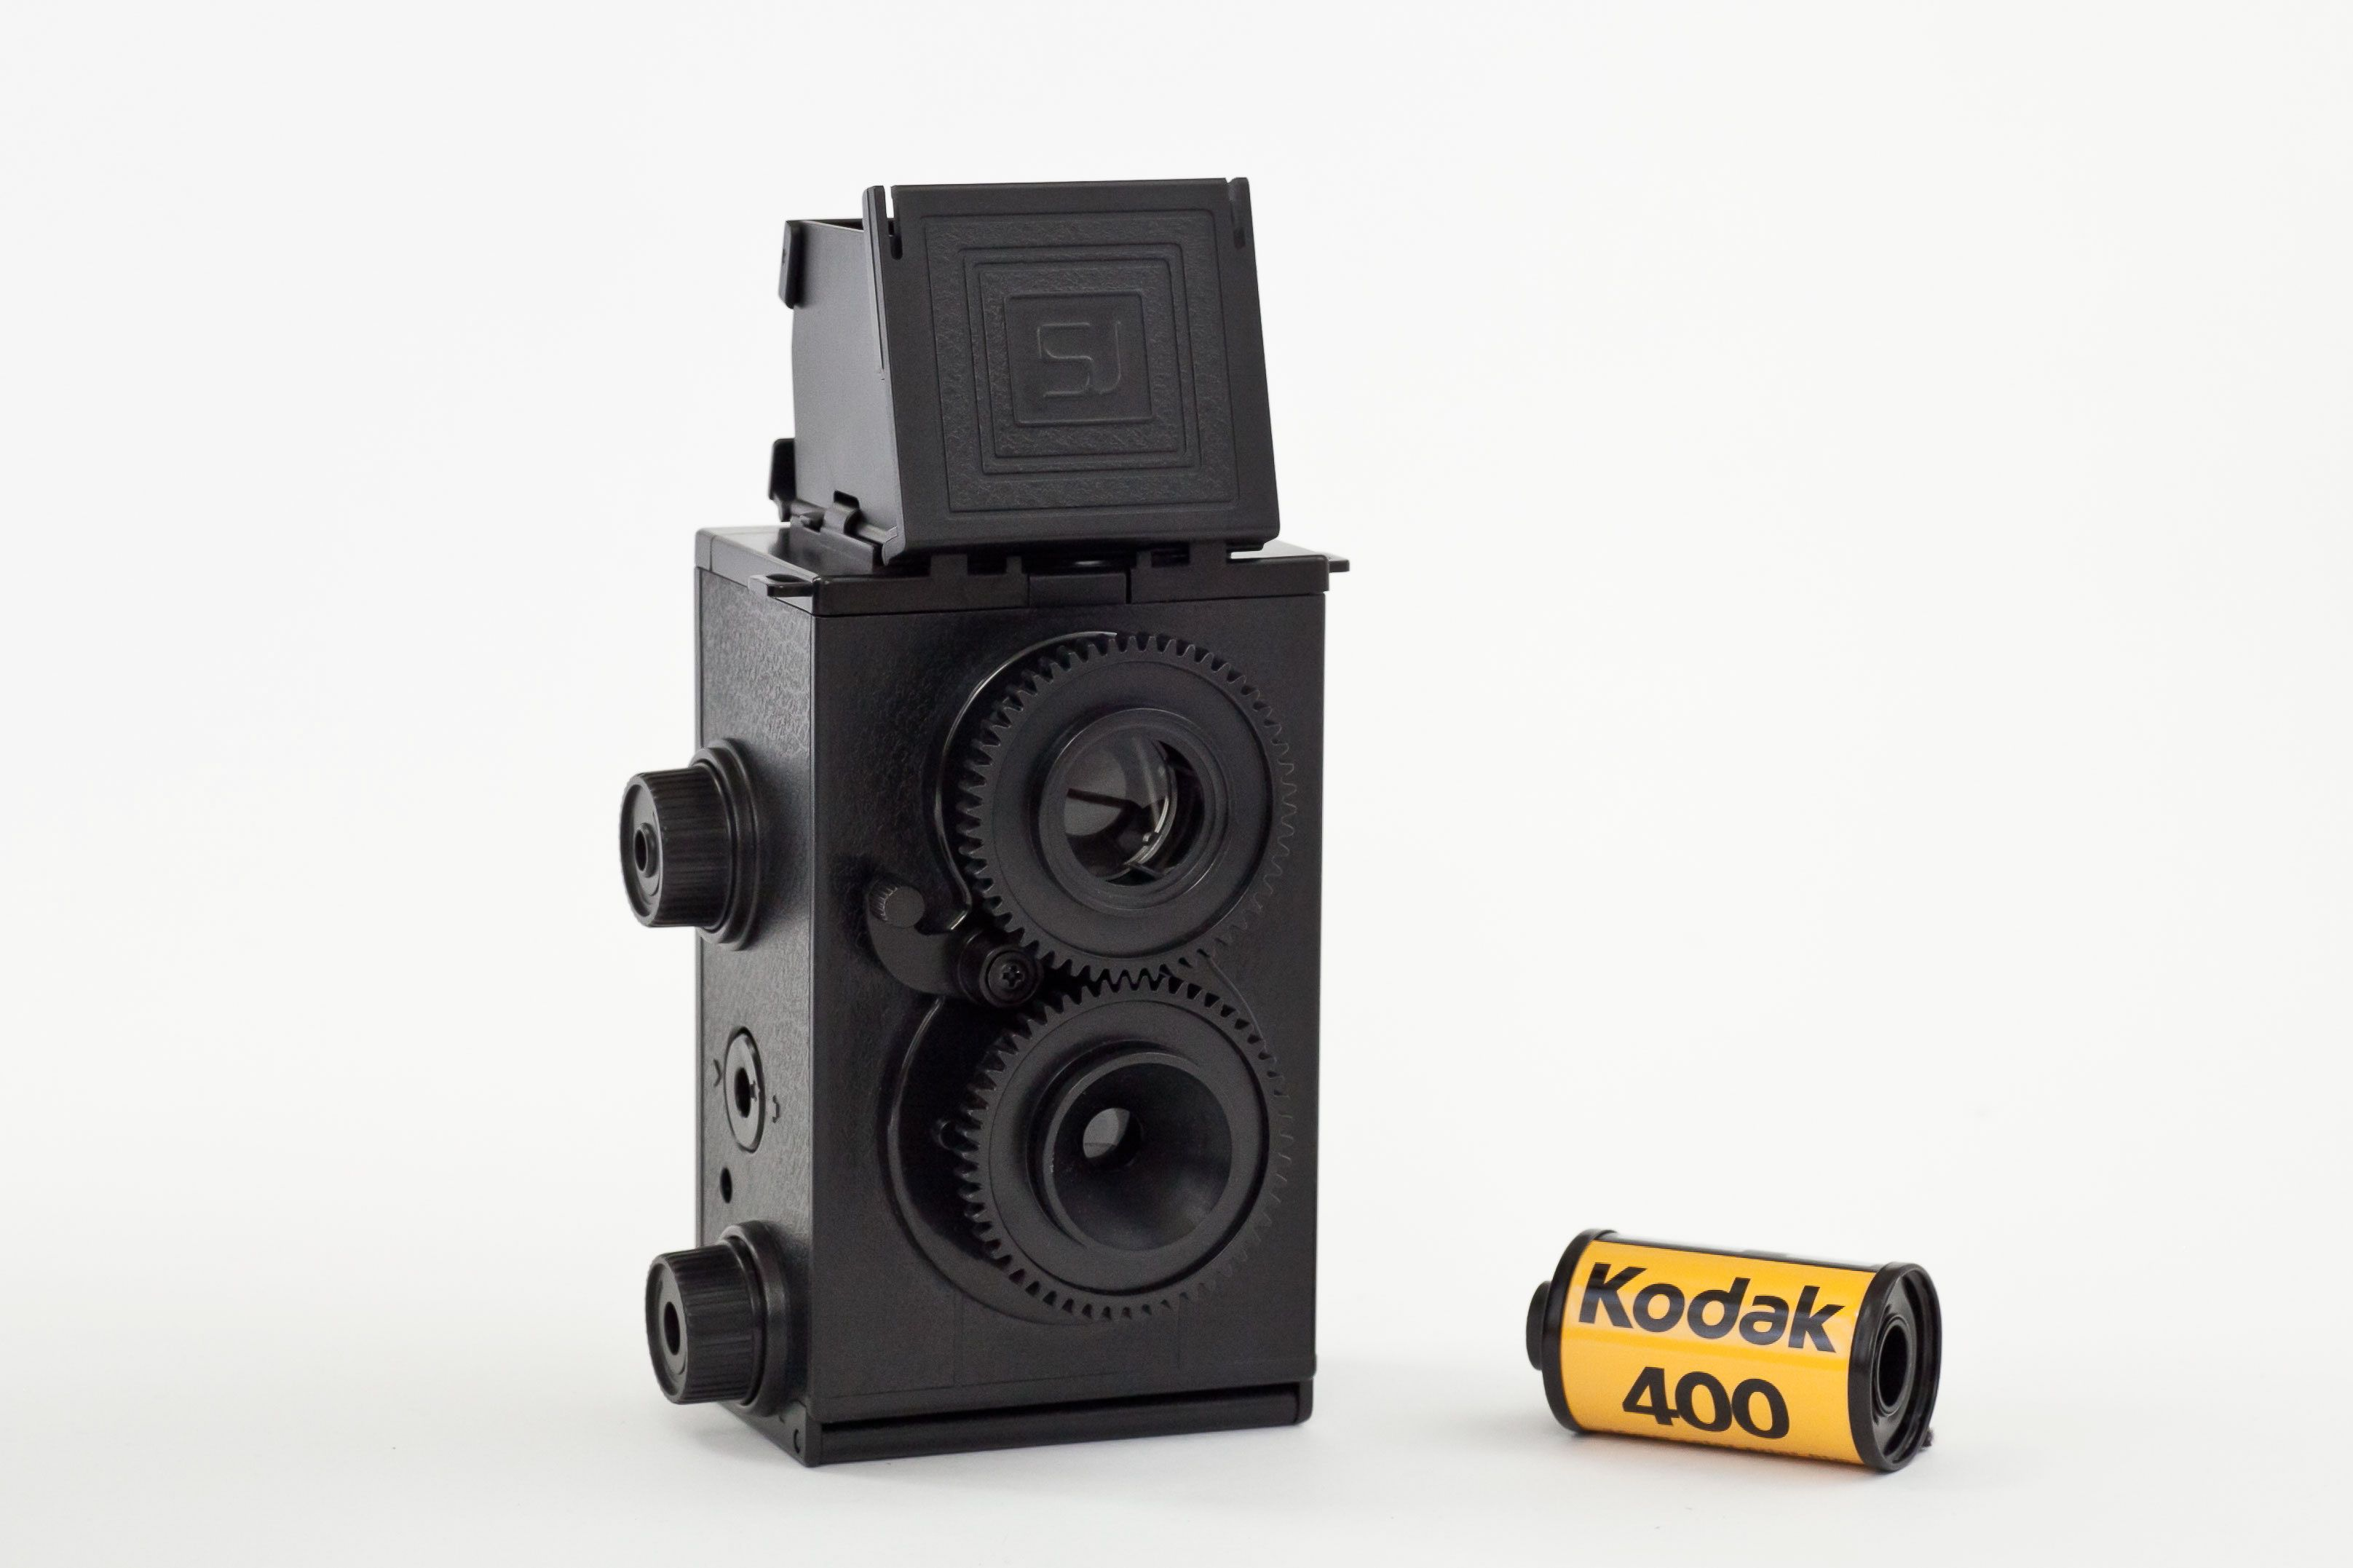 DIY Twin Lens Reflex Camera - Learn the magical mysteries of camera innards with this build-your-own-TLR kit! ($20.00, http://photojojo.com/store)